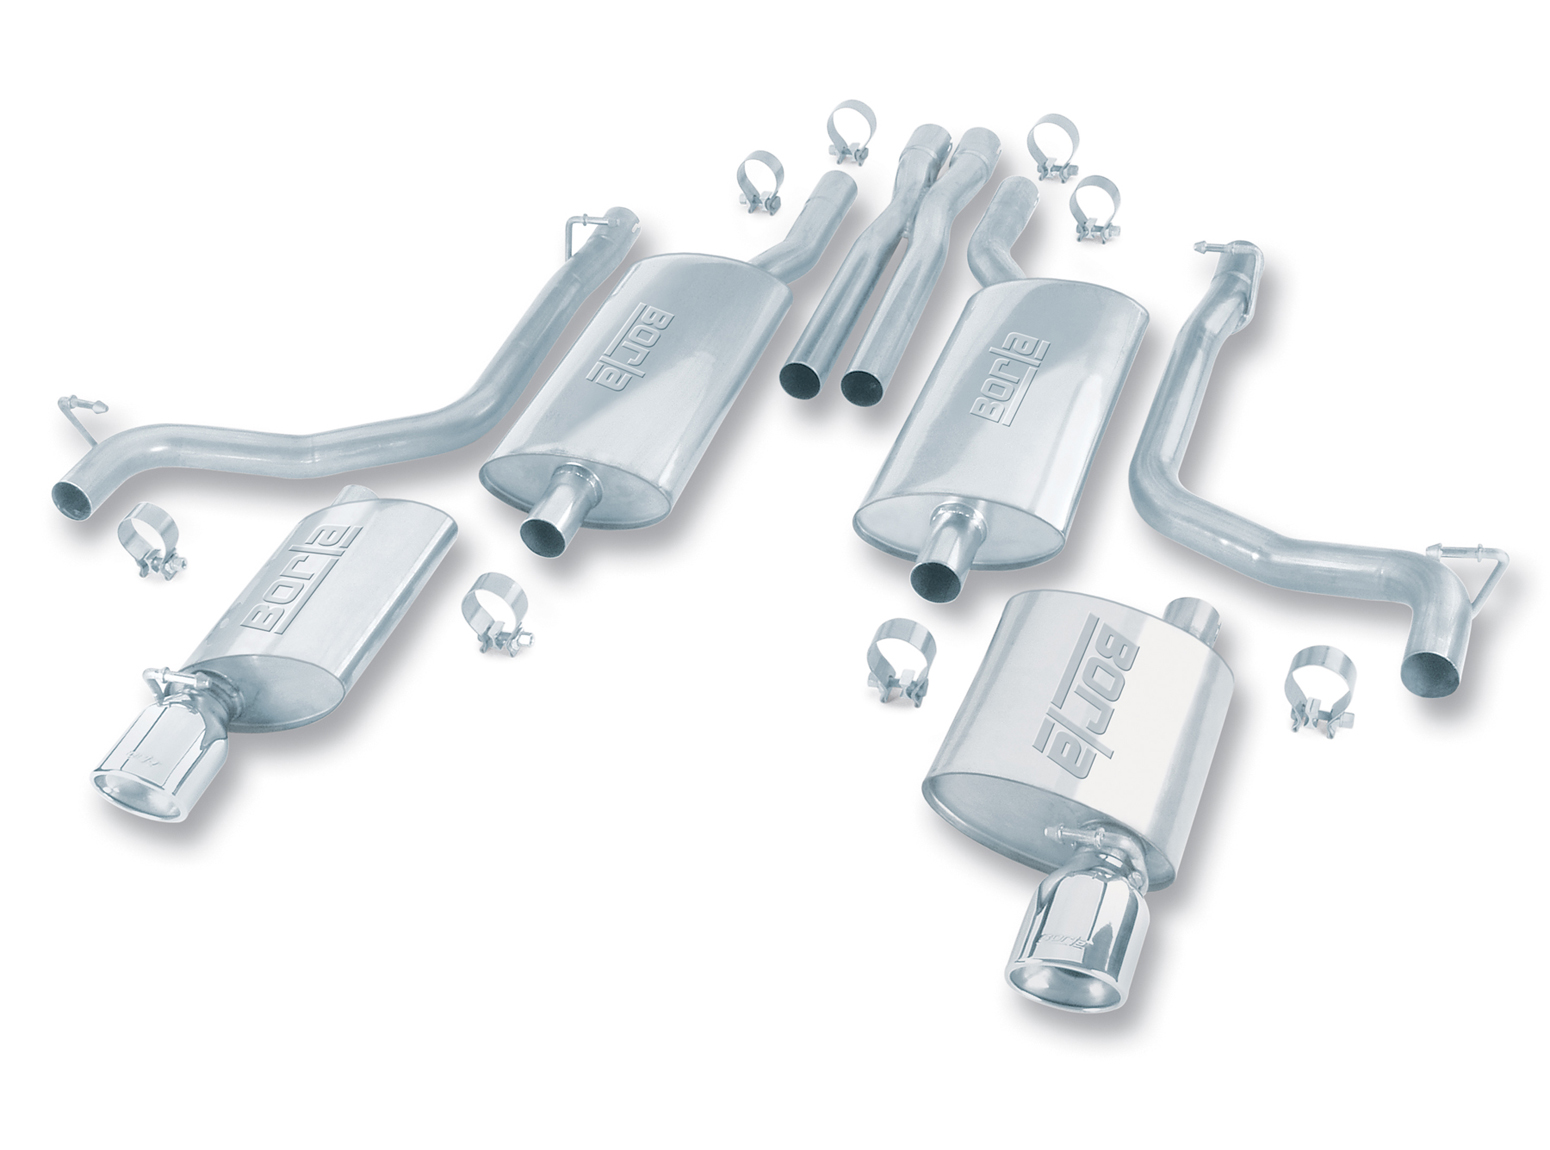 "Dodge Magnum Rt 5.7l V8 2005-2008 Borla 2.5"", 2.25"" Cat-Back Exhaust System - Single Oval Rolled Angle-Cut Tips"